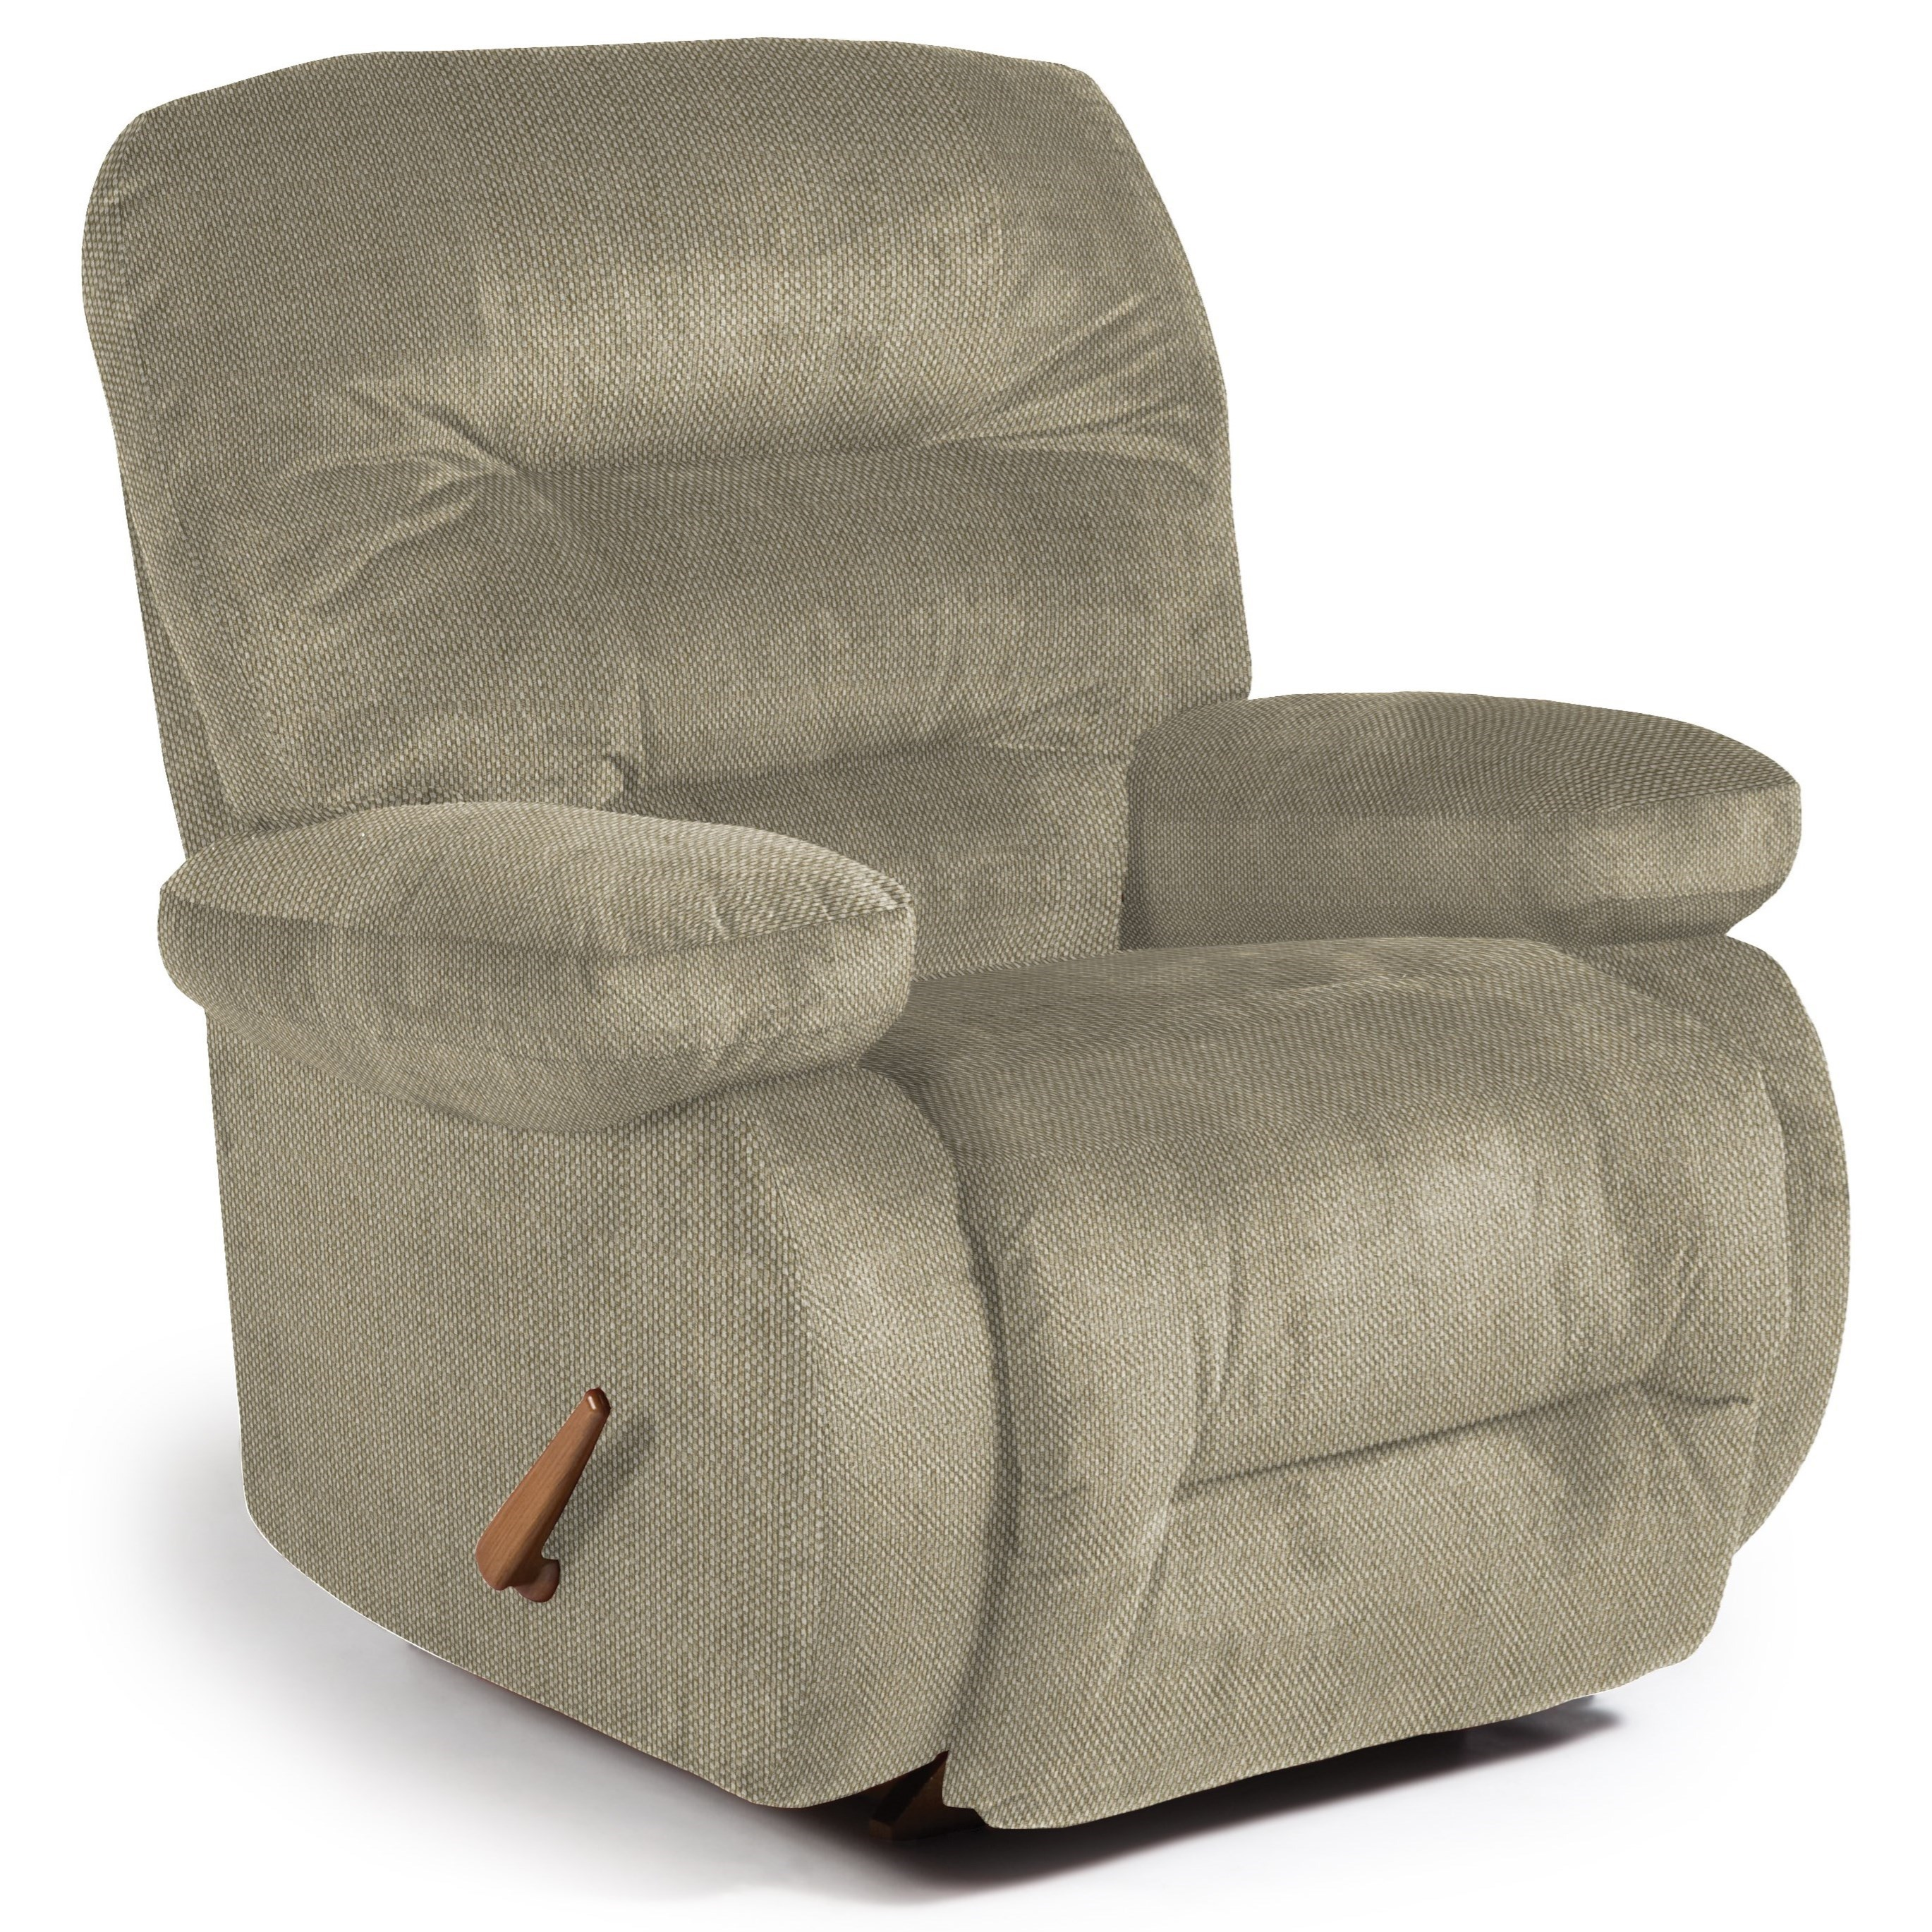 Medium Recliners Maddox Space Saver Recliner by Best Home Furnishings at Lucas Furniture & Mattress